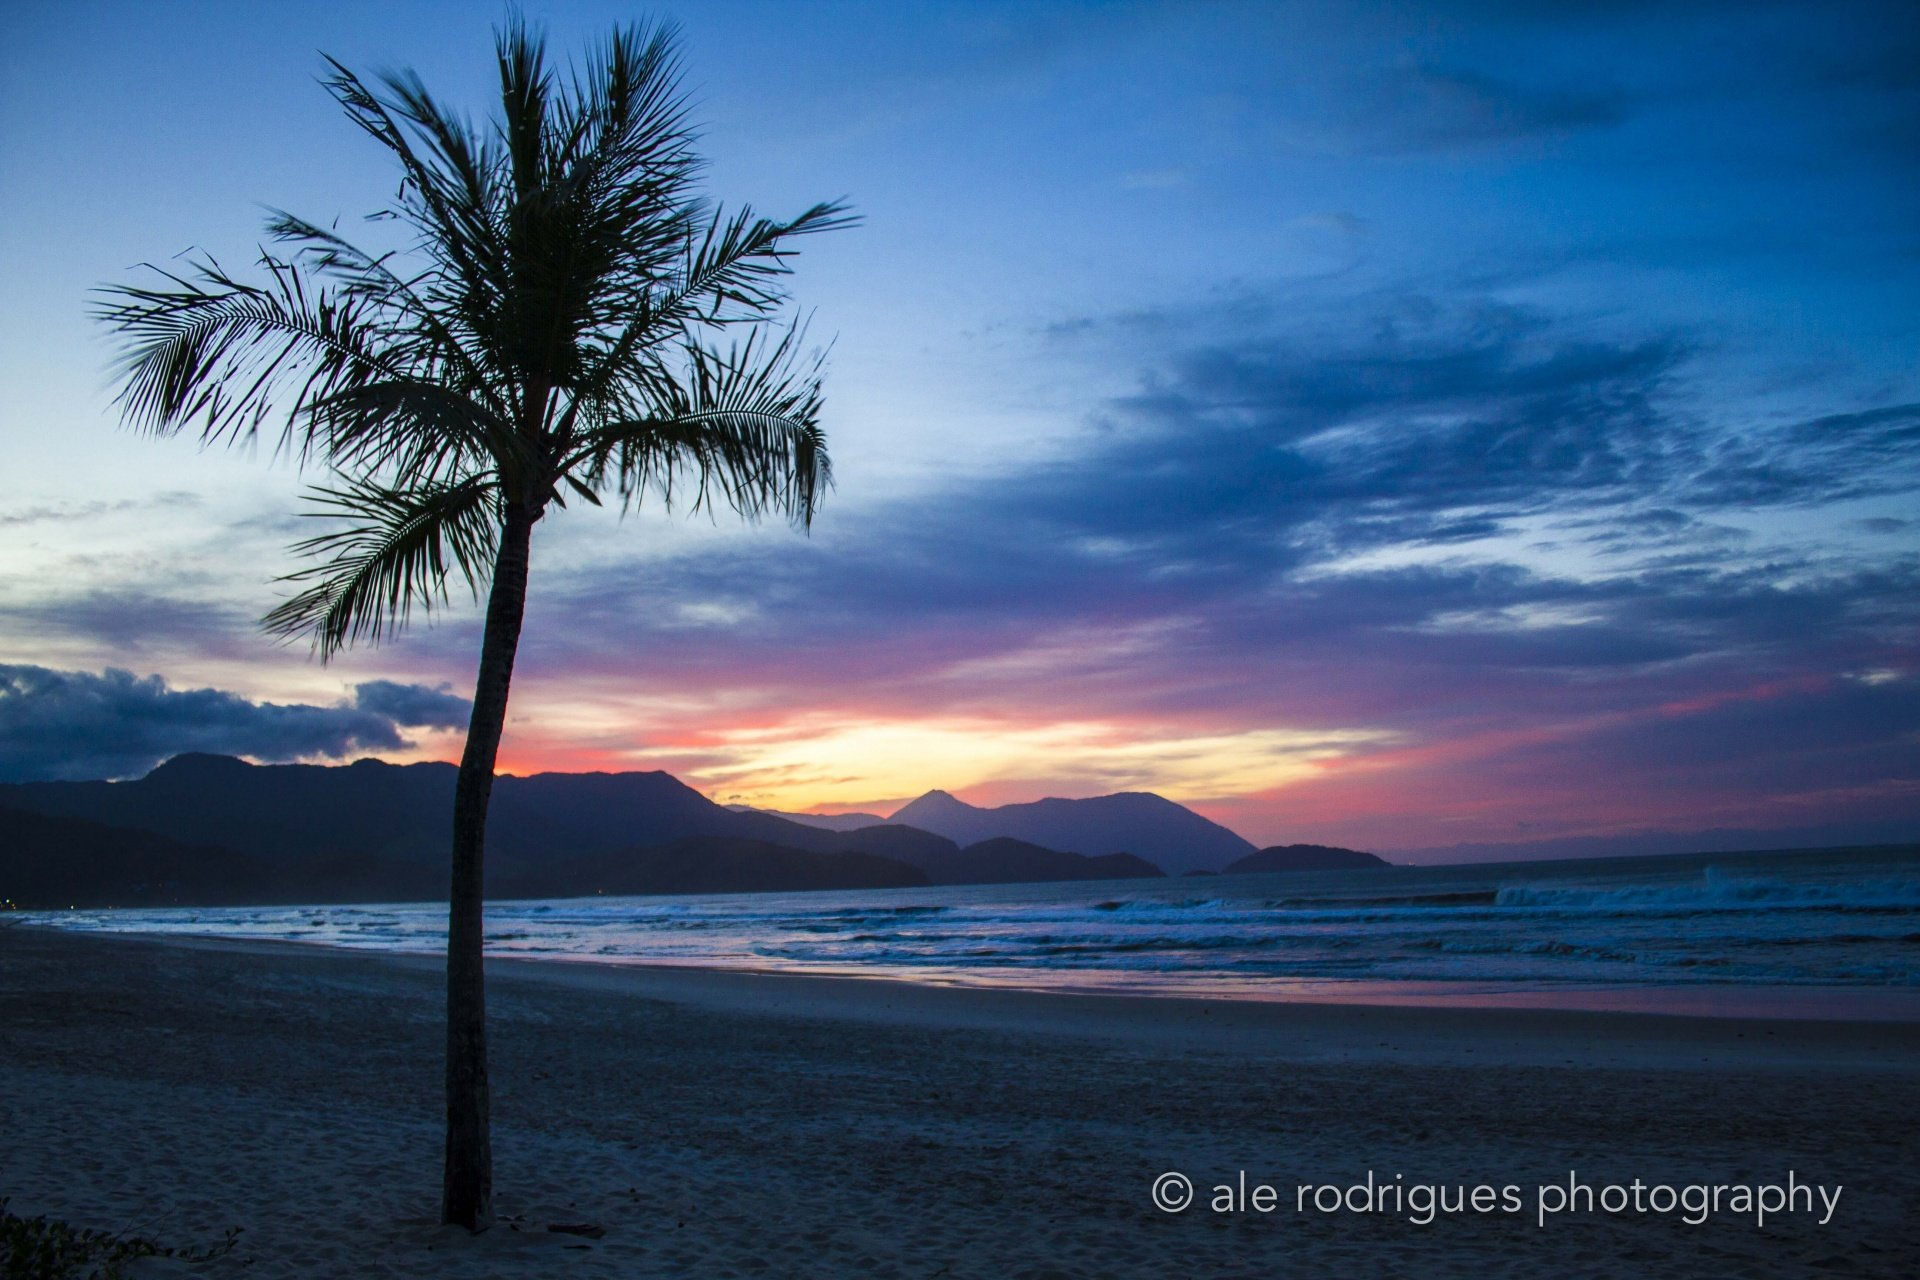 Ale Rodrigues Photography's photo of Maresias